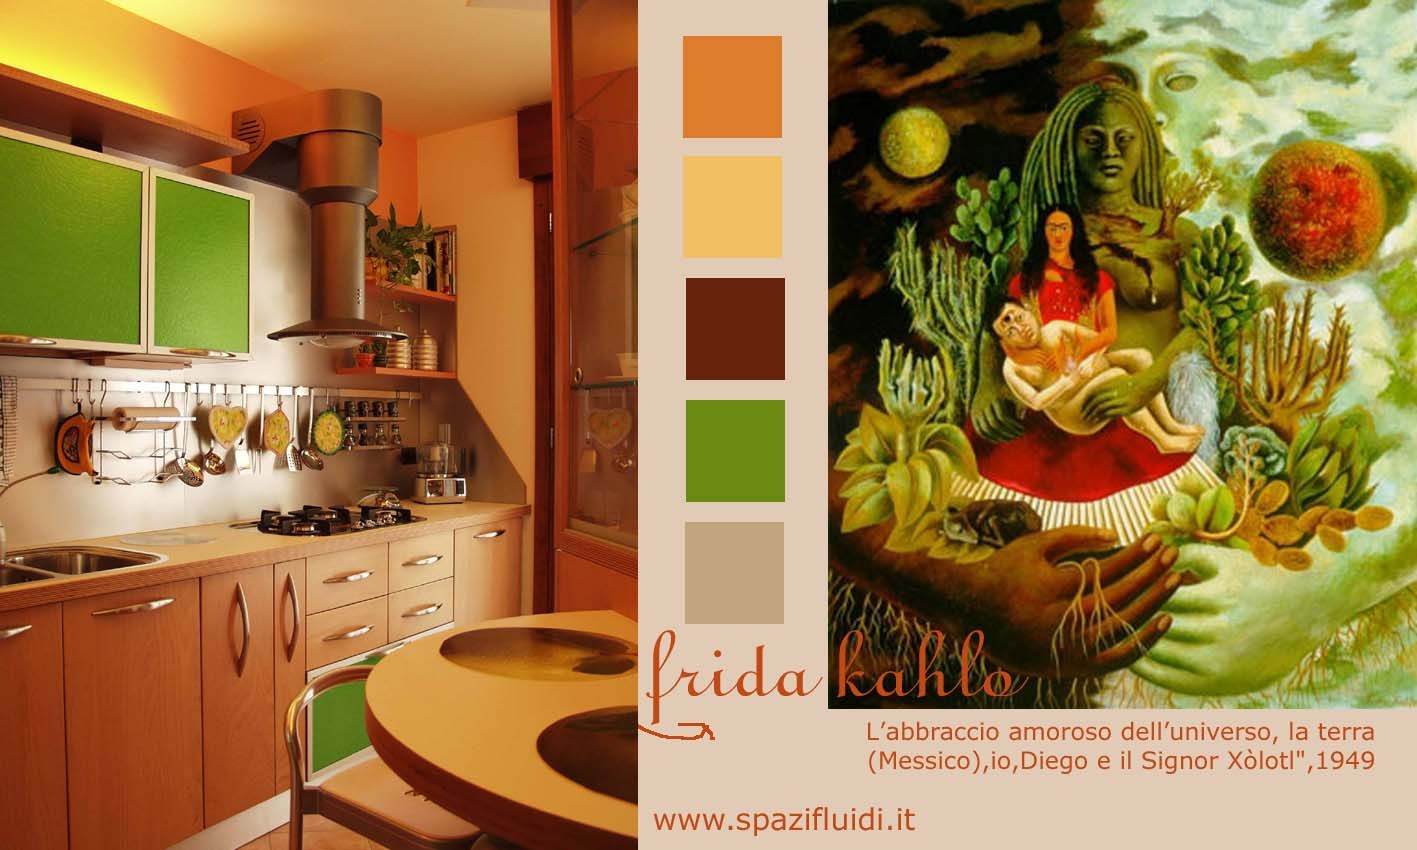 Cucina Frida kahlo #fridakahlo #kitchen #earth #fengshui #cucina ...